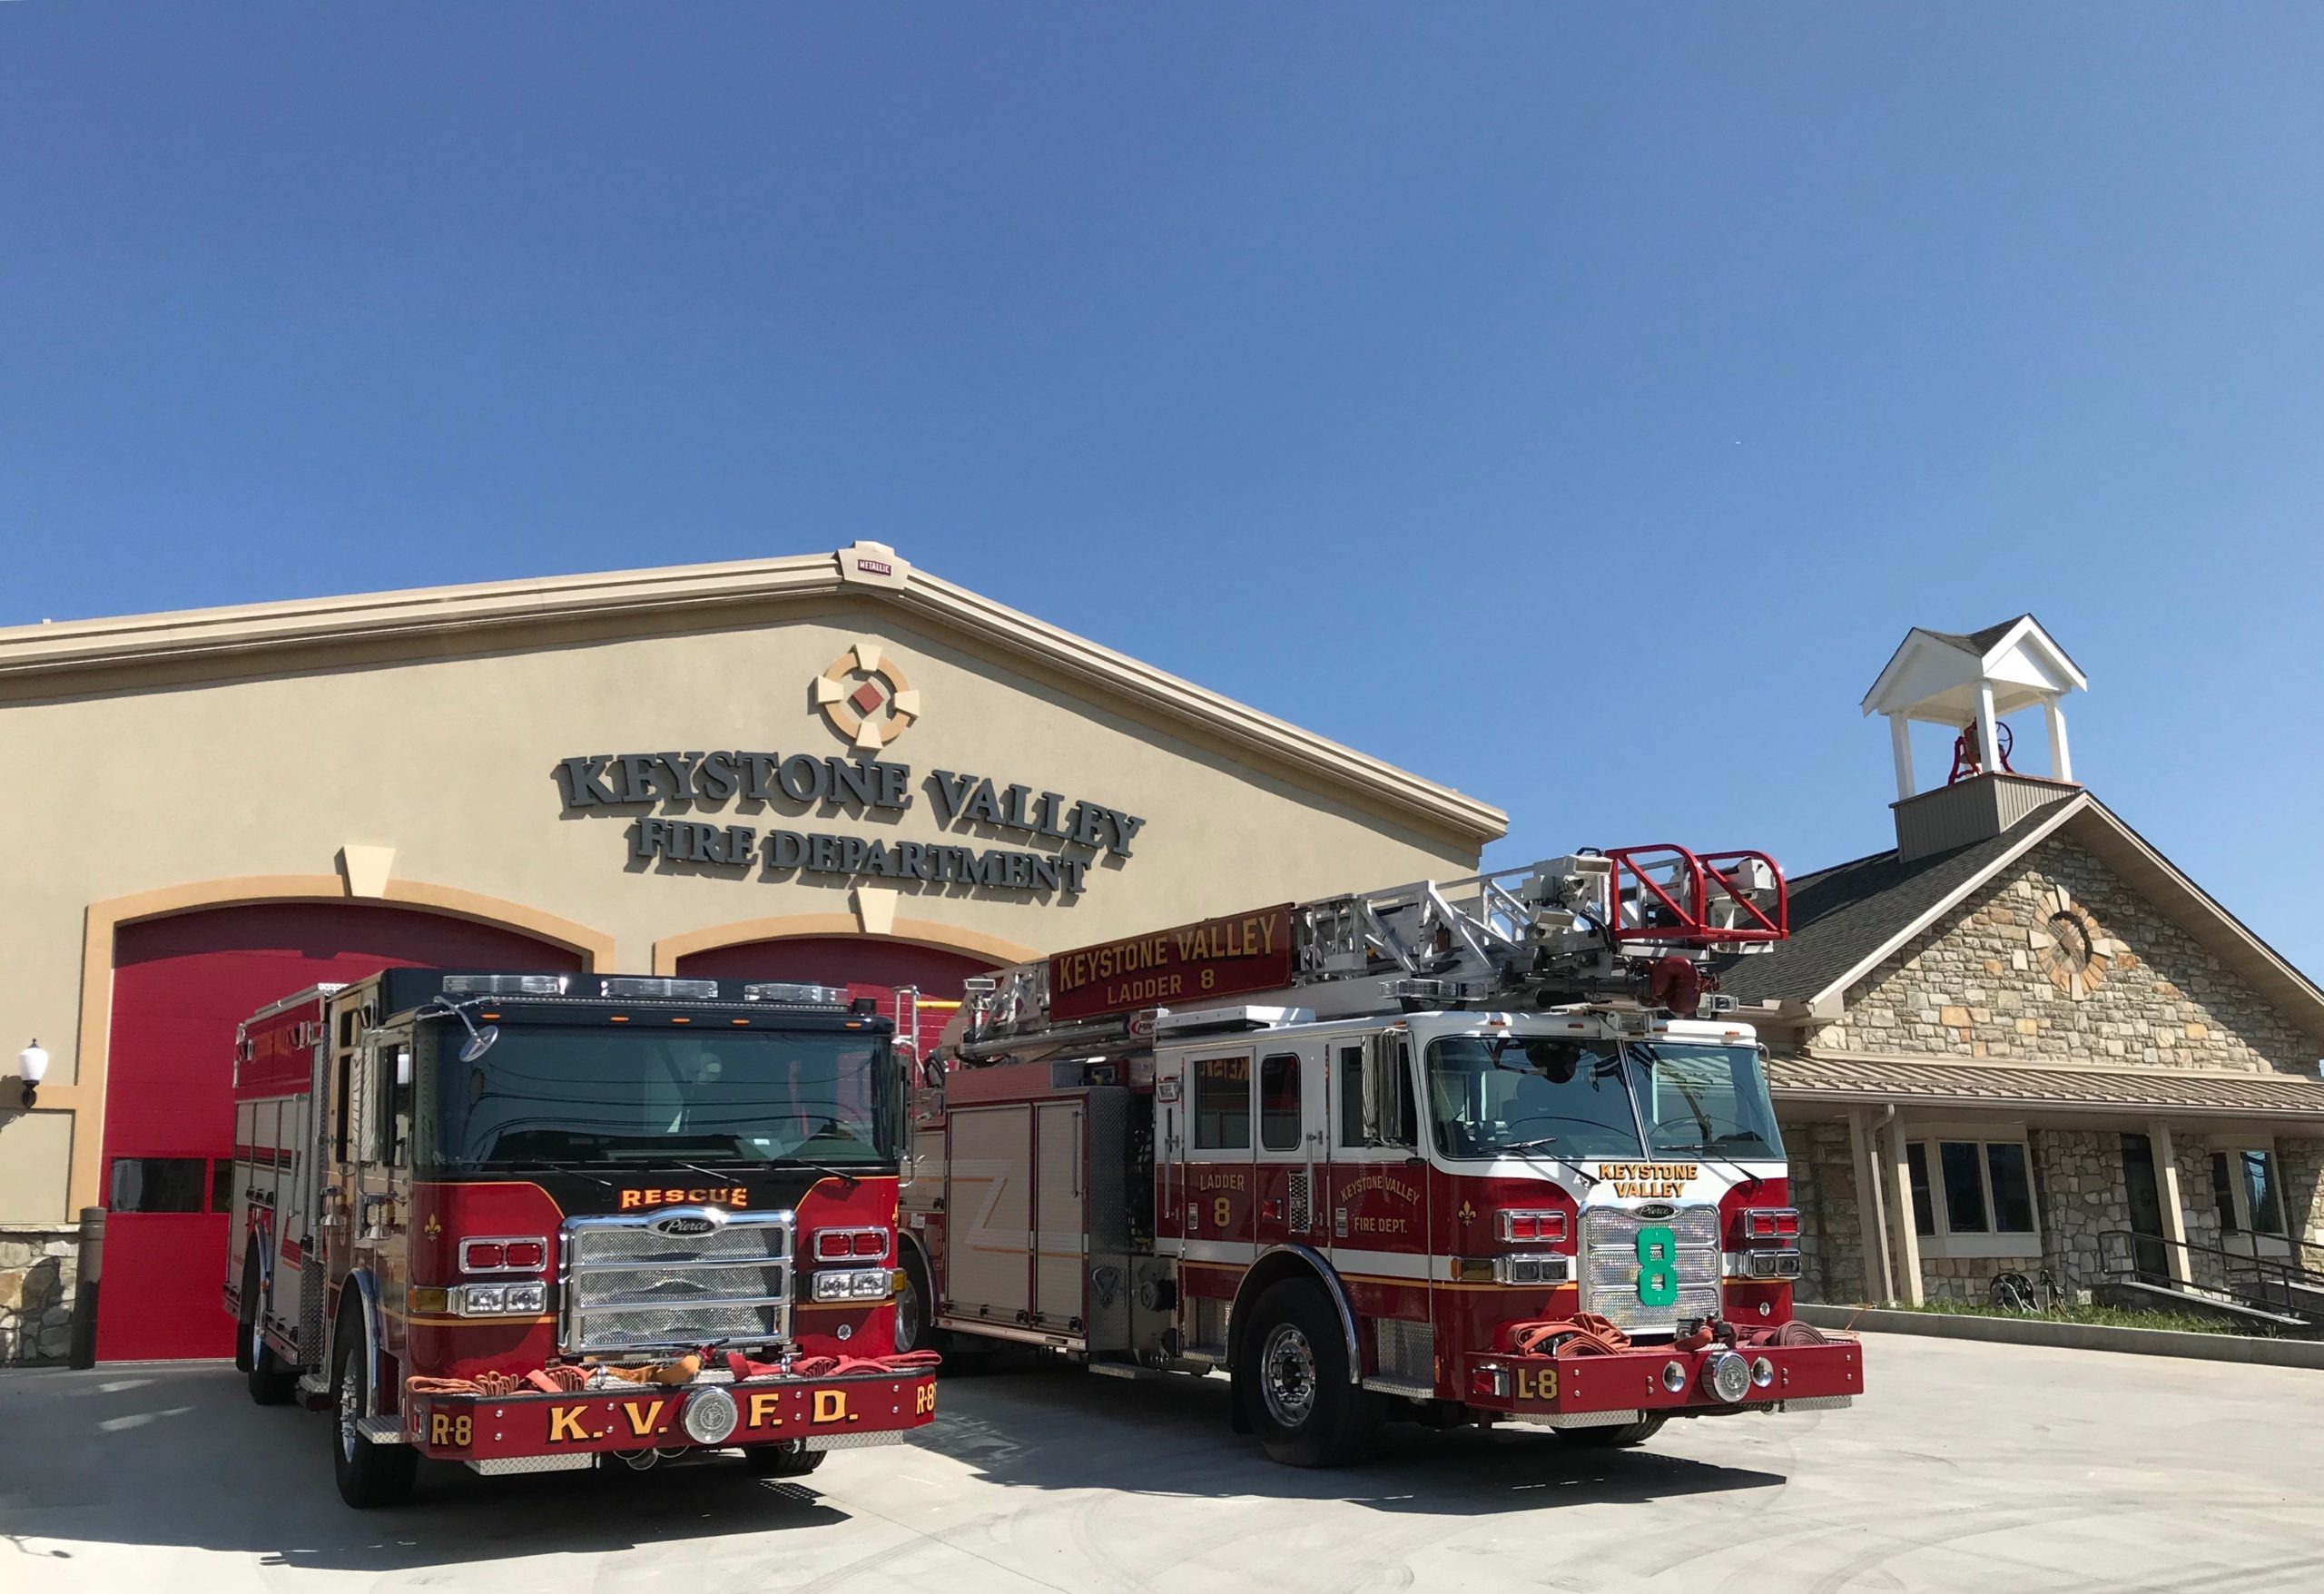 Keystone Valley Fire Department Dedicates Its Renovated Station in Parkesburg